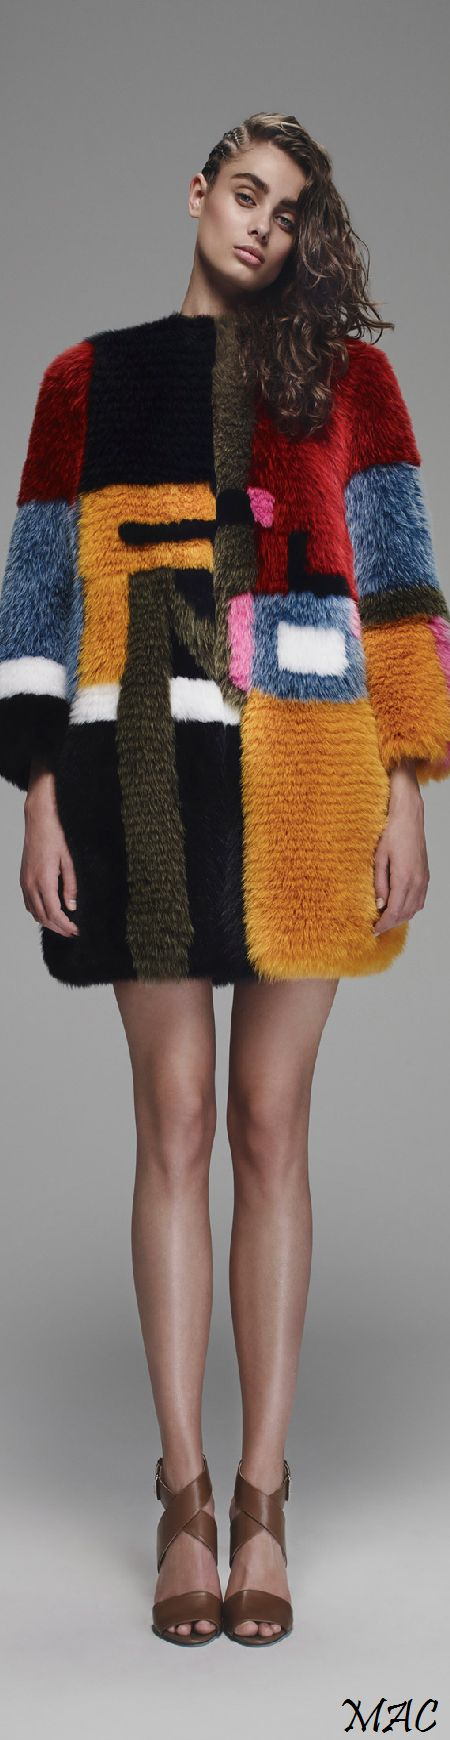 "Resort 2016 Fendi ""And the LORD said to Moses, ""Go to the people and consecrate them today and tomorrow. Have them wash their clothes."" Exodus 19:10"